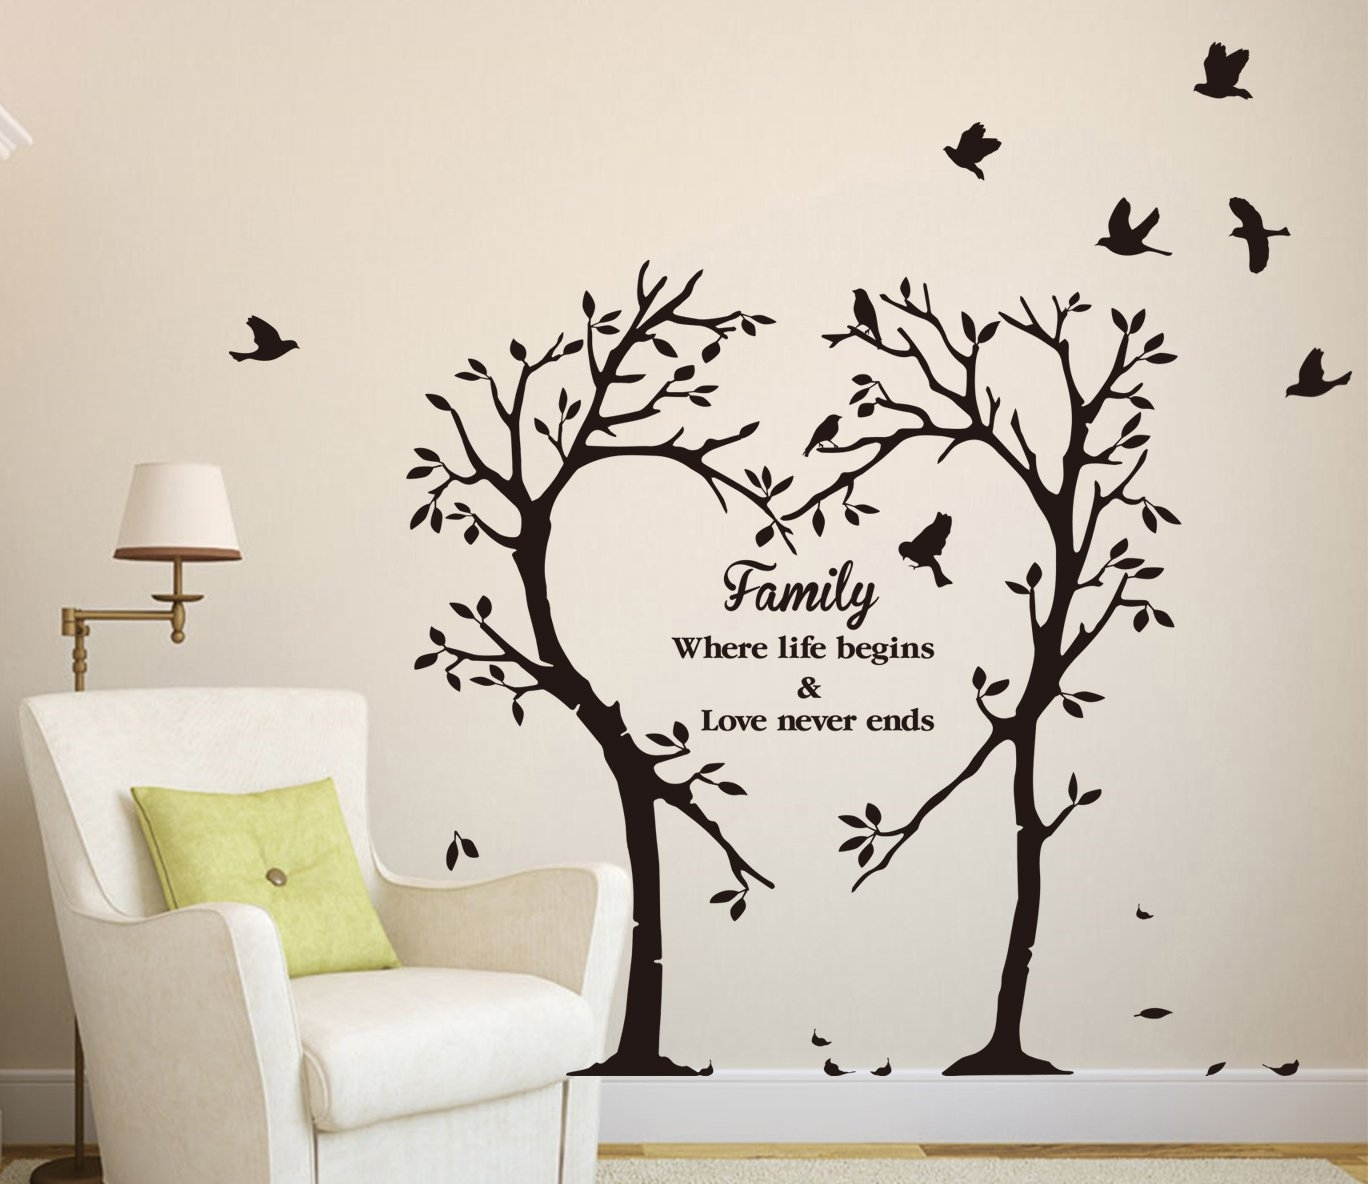 Large Family Inspirational Love Tree Wall Art Sticker, Wall Sticker Within Family Wall Art (View 20 of 20)